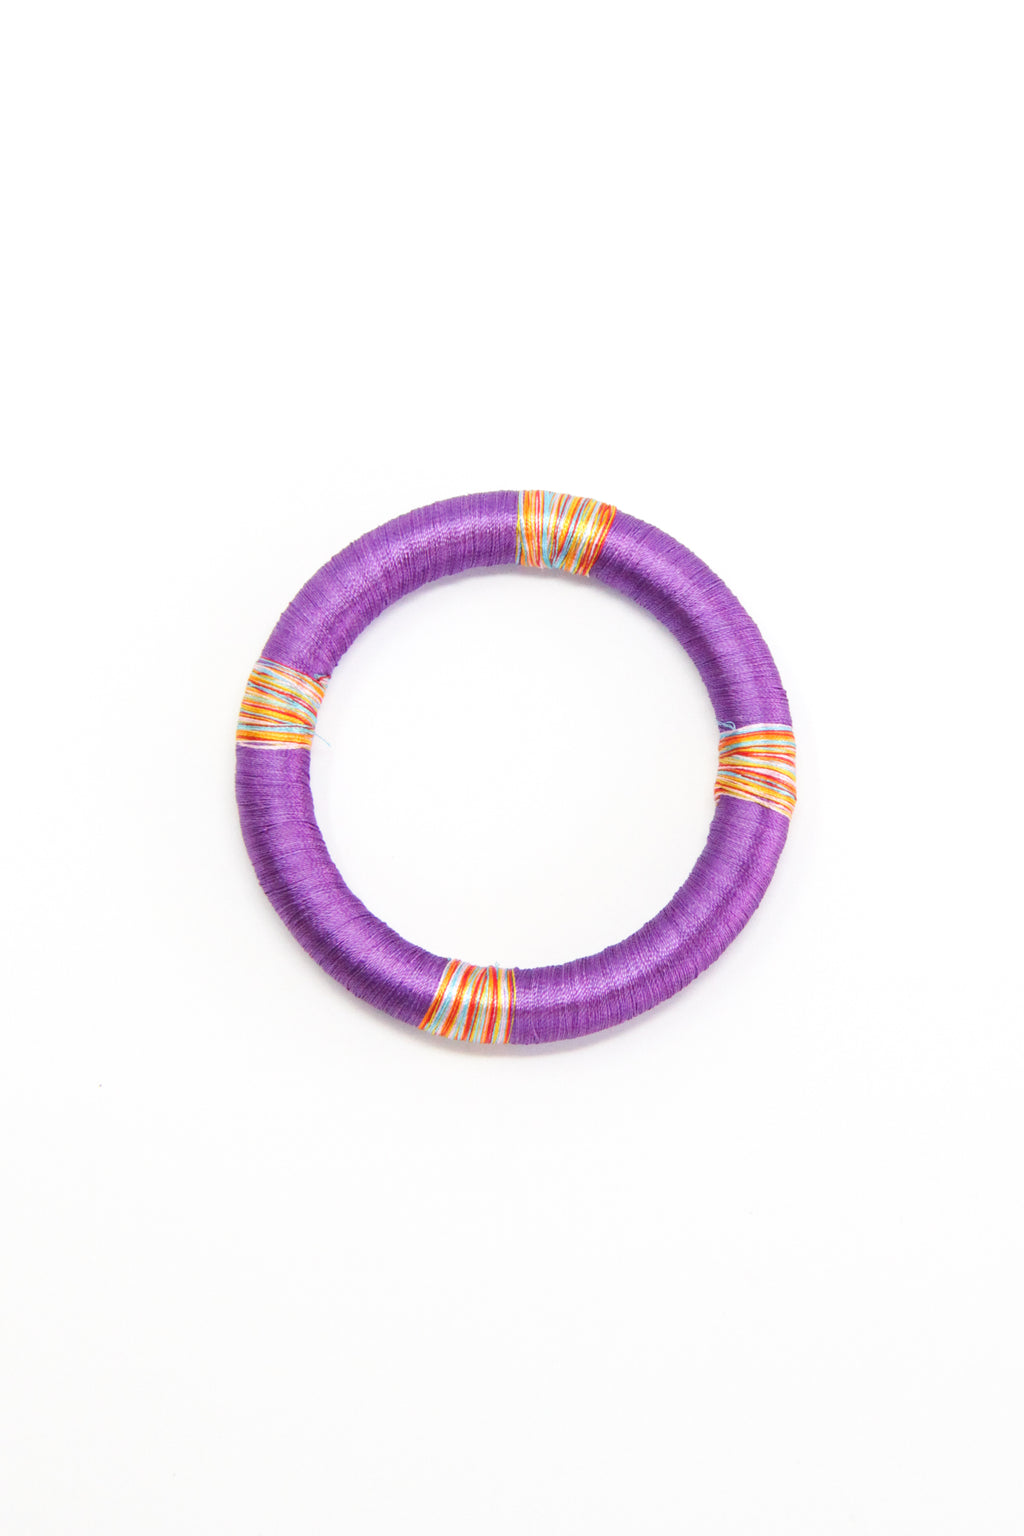 Threaded Bangle in Amethyst